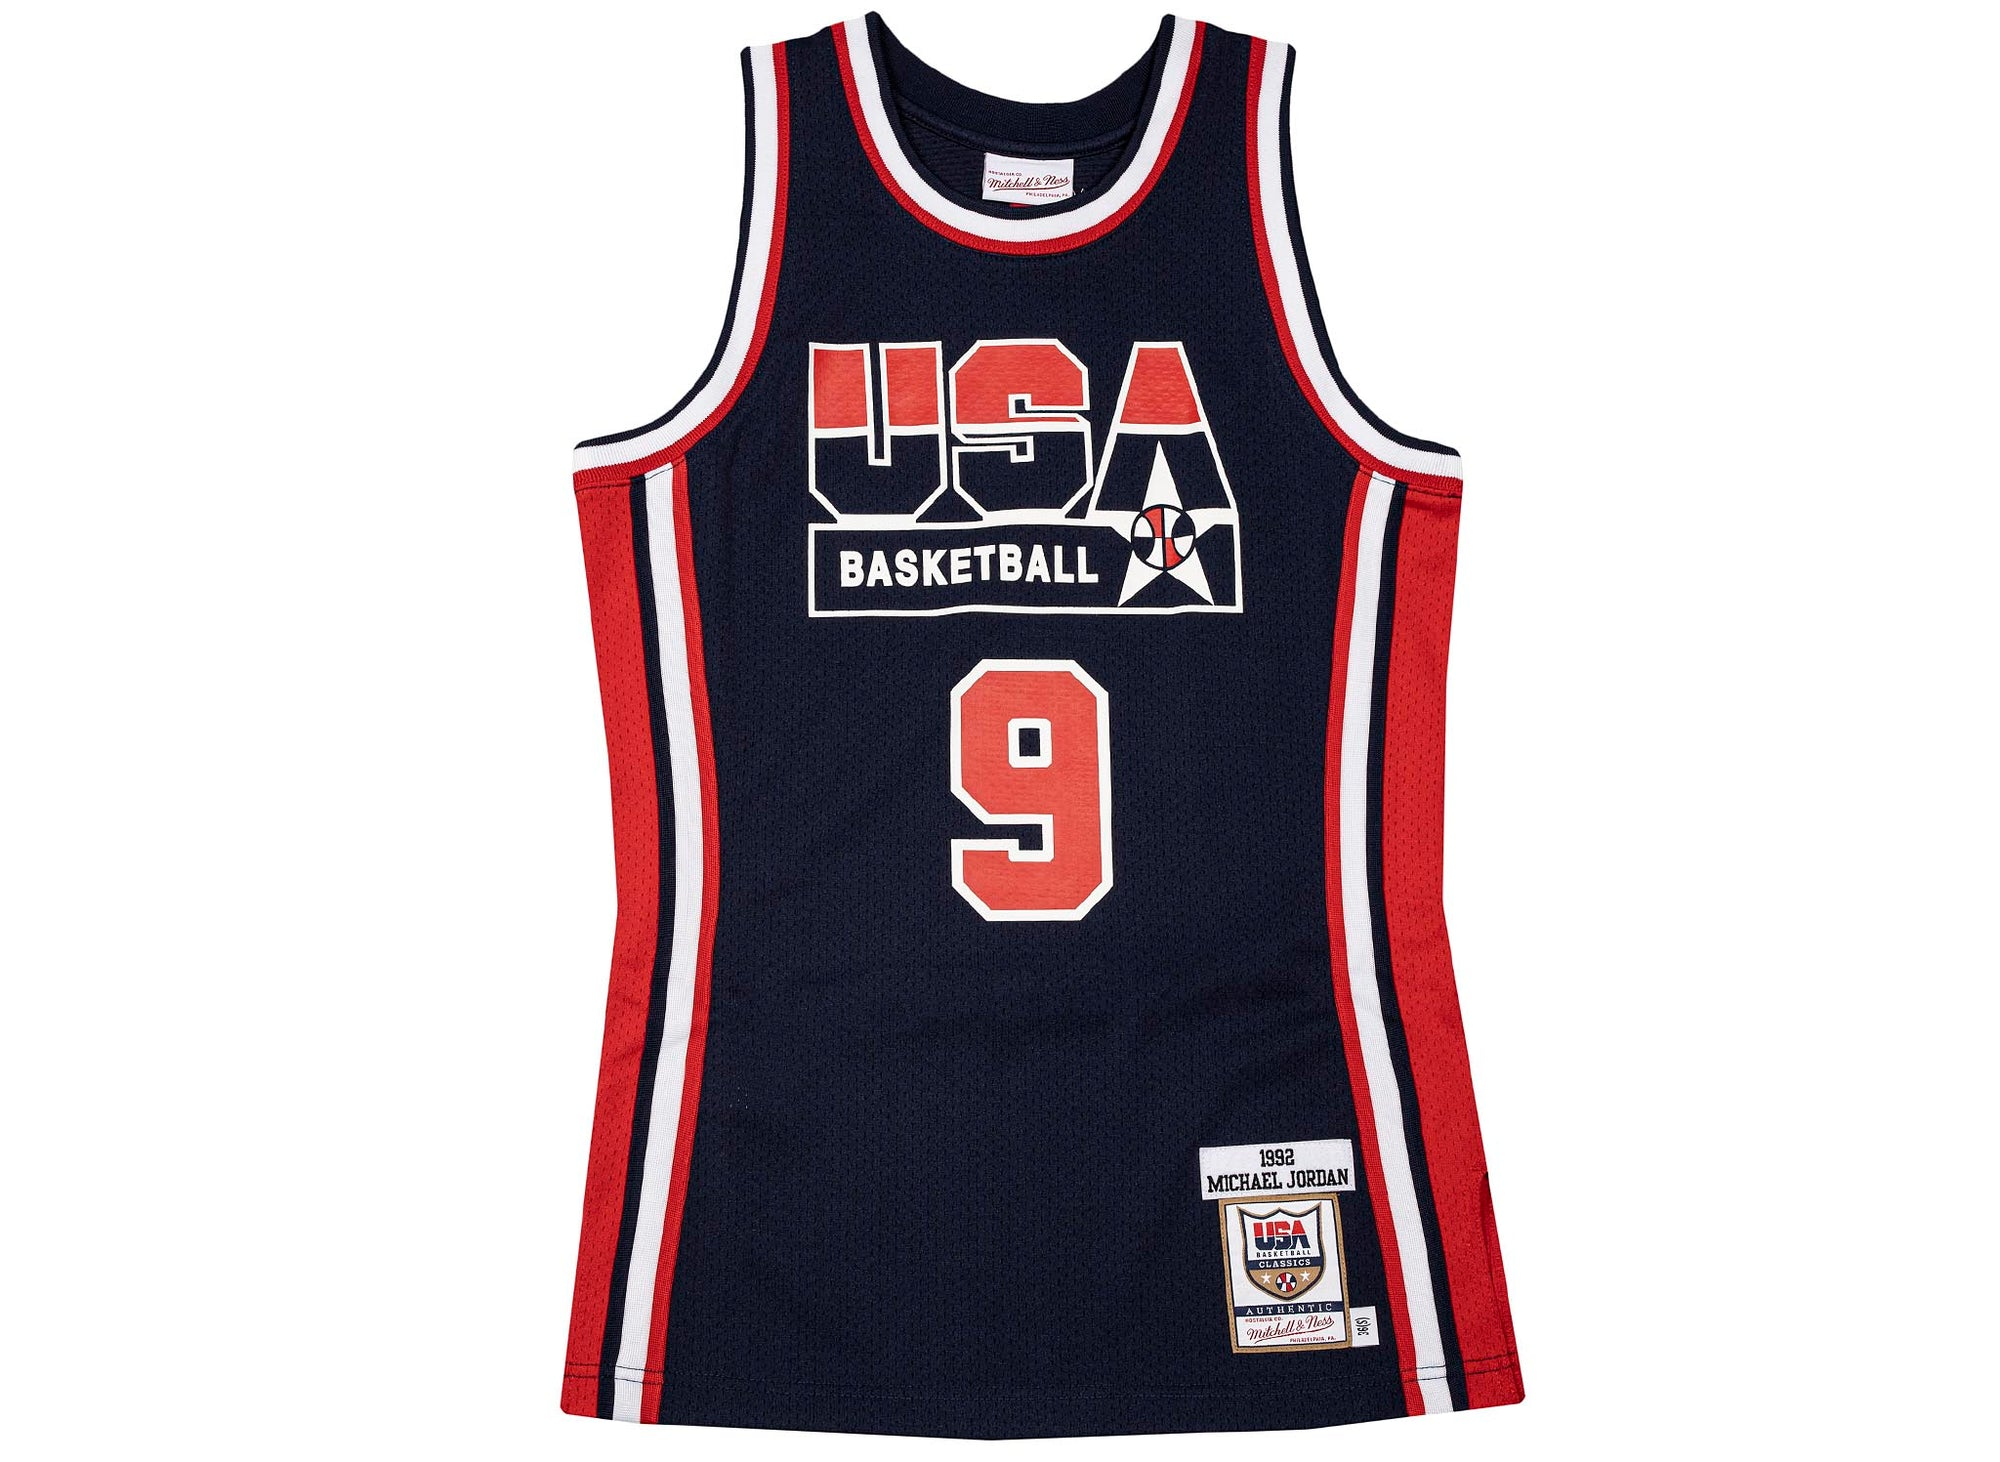 Mitchell & Ness NBA Authentic Jersey Team USA '92 Michael Jordan 'Navy'